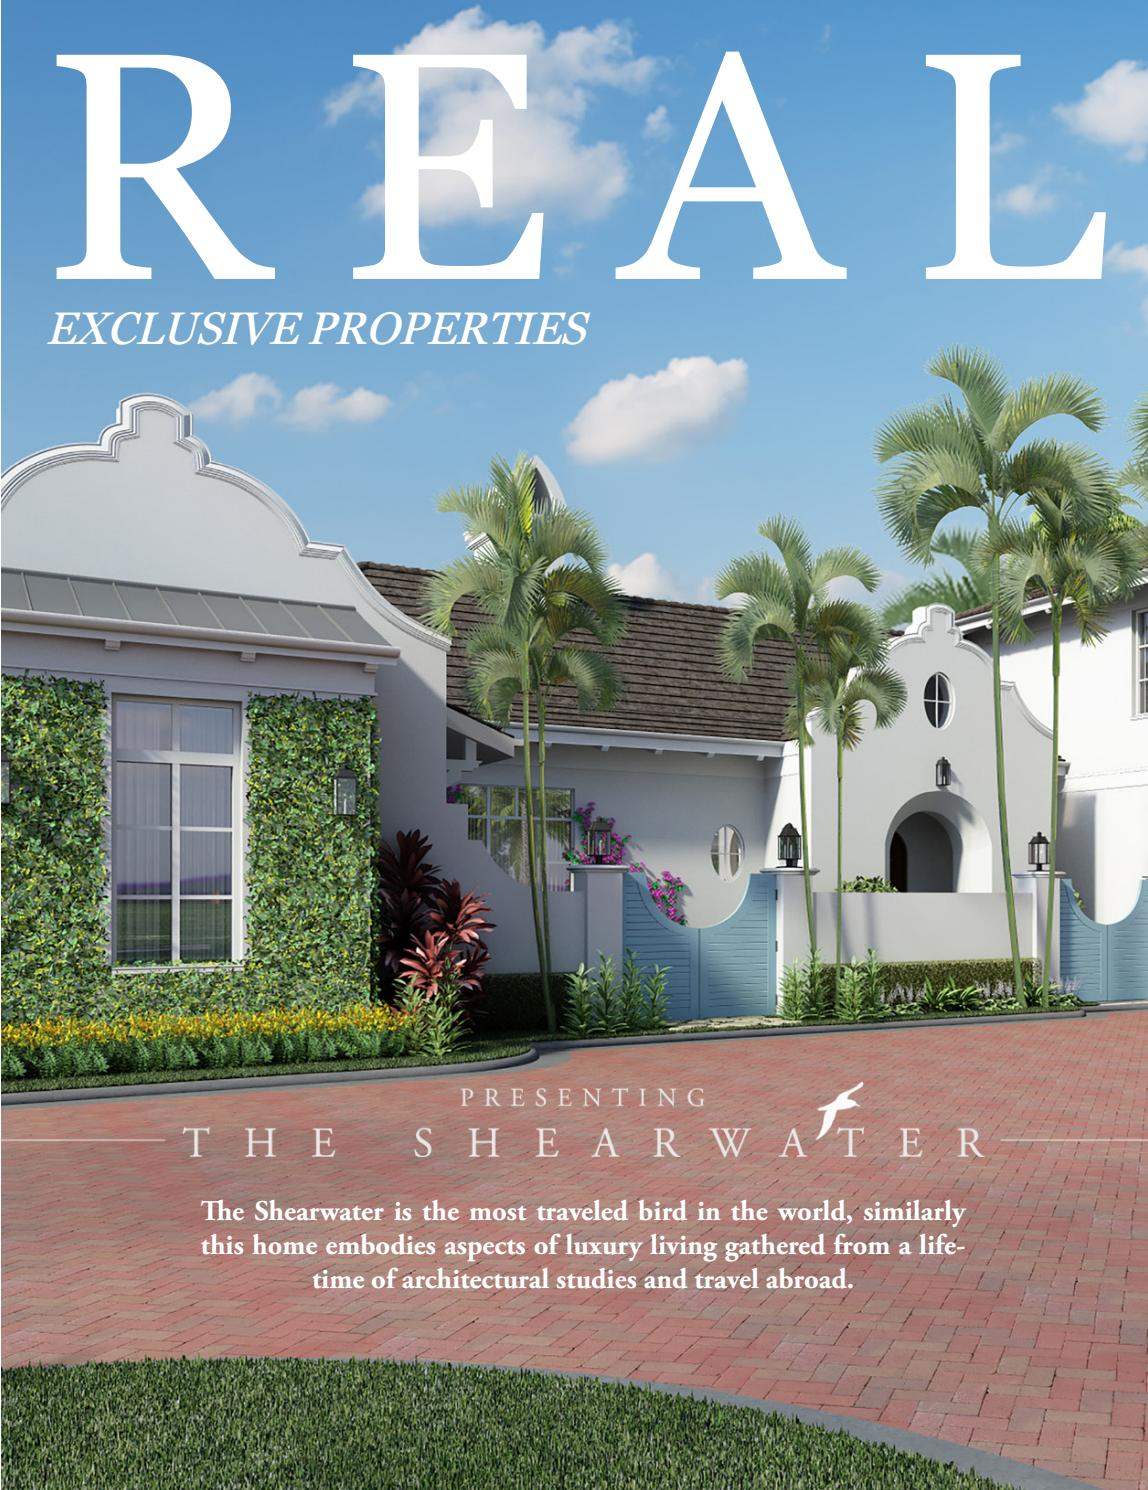 Real Exclusive Magazine Featuring Nautulis Homes Shearwater By Issuu